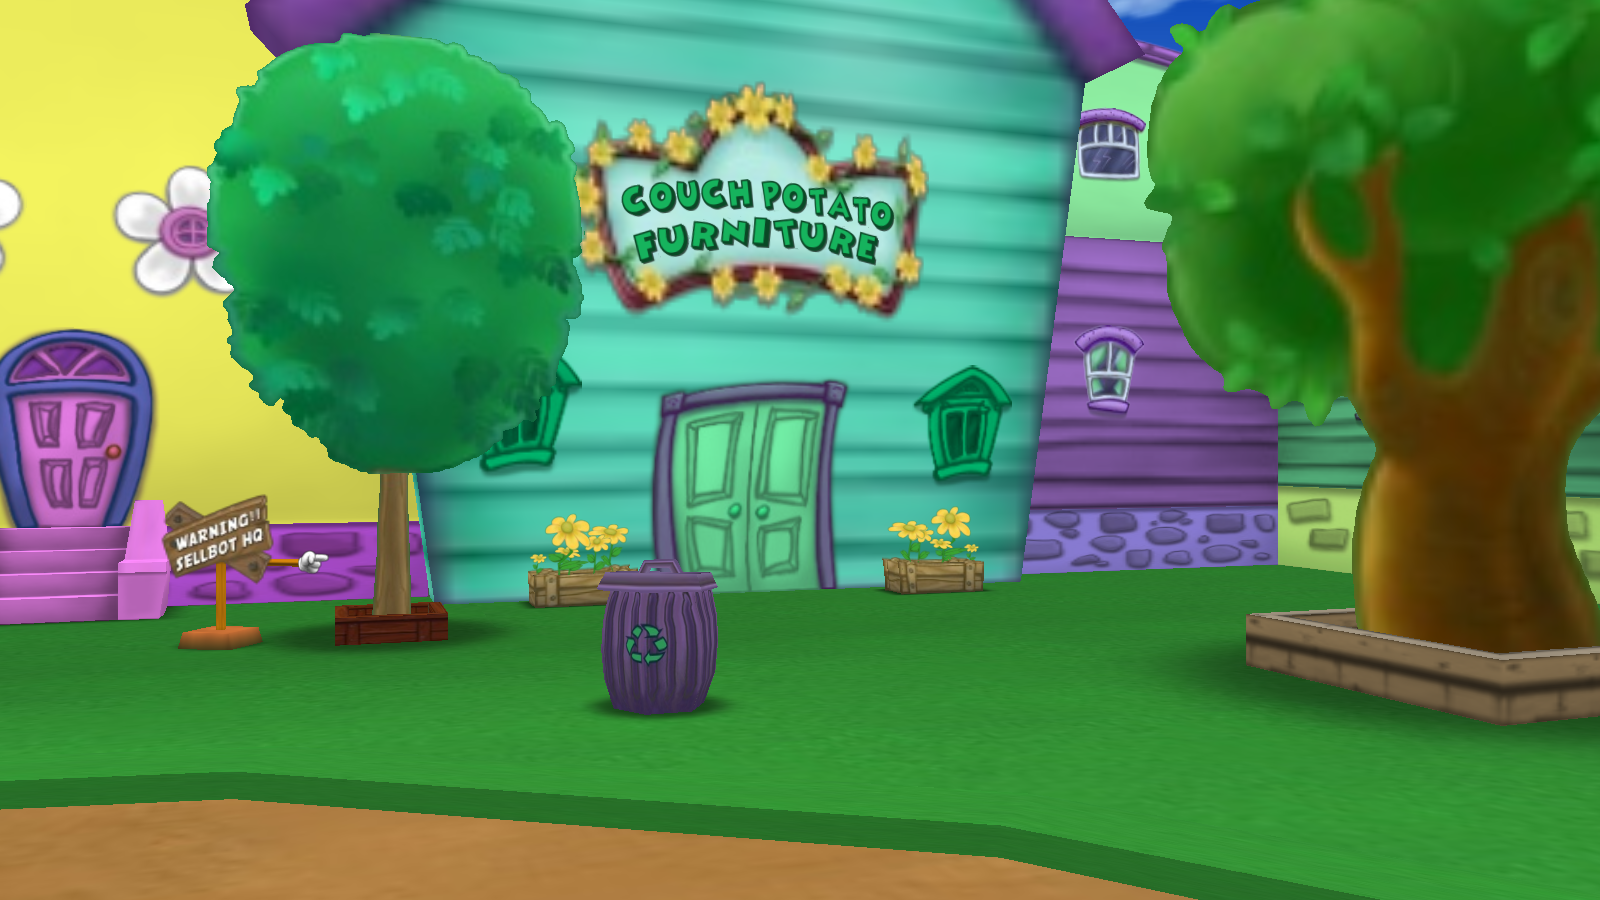 Couch Potato Furniture | Toontown Rewritten Wiki | FANDOM powered by Wikia